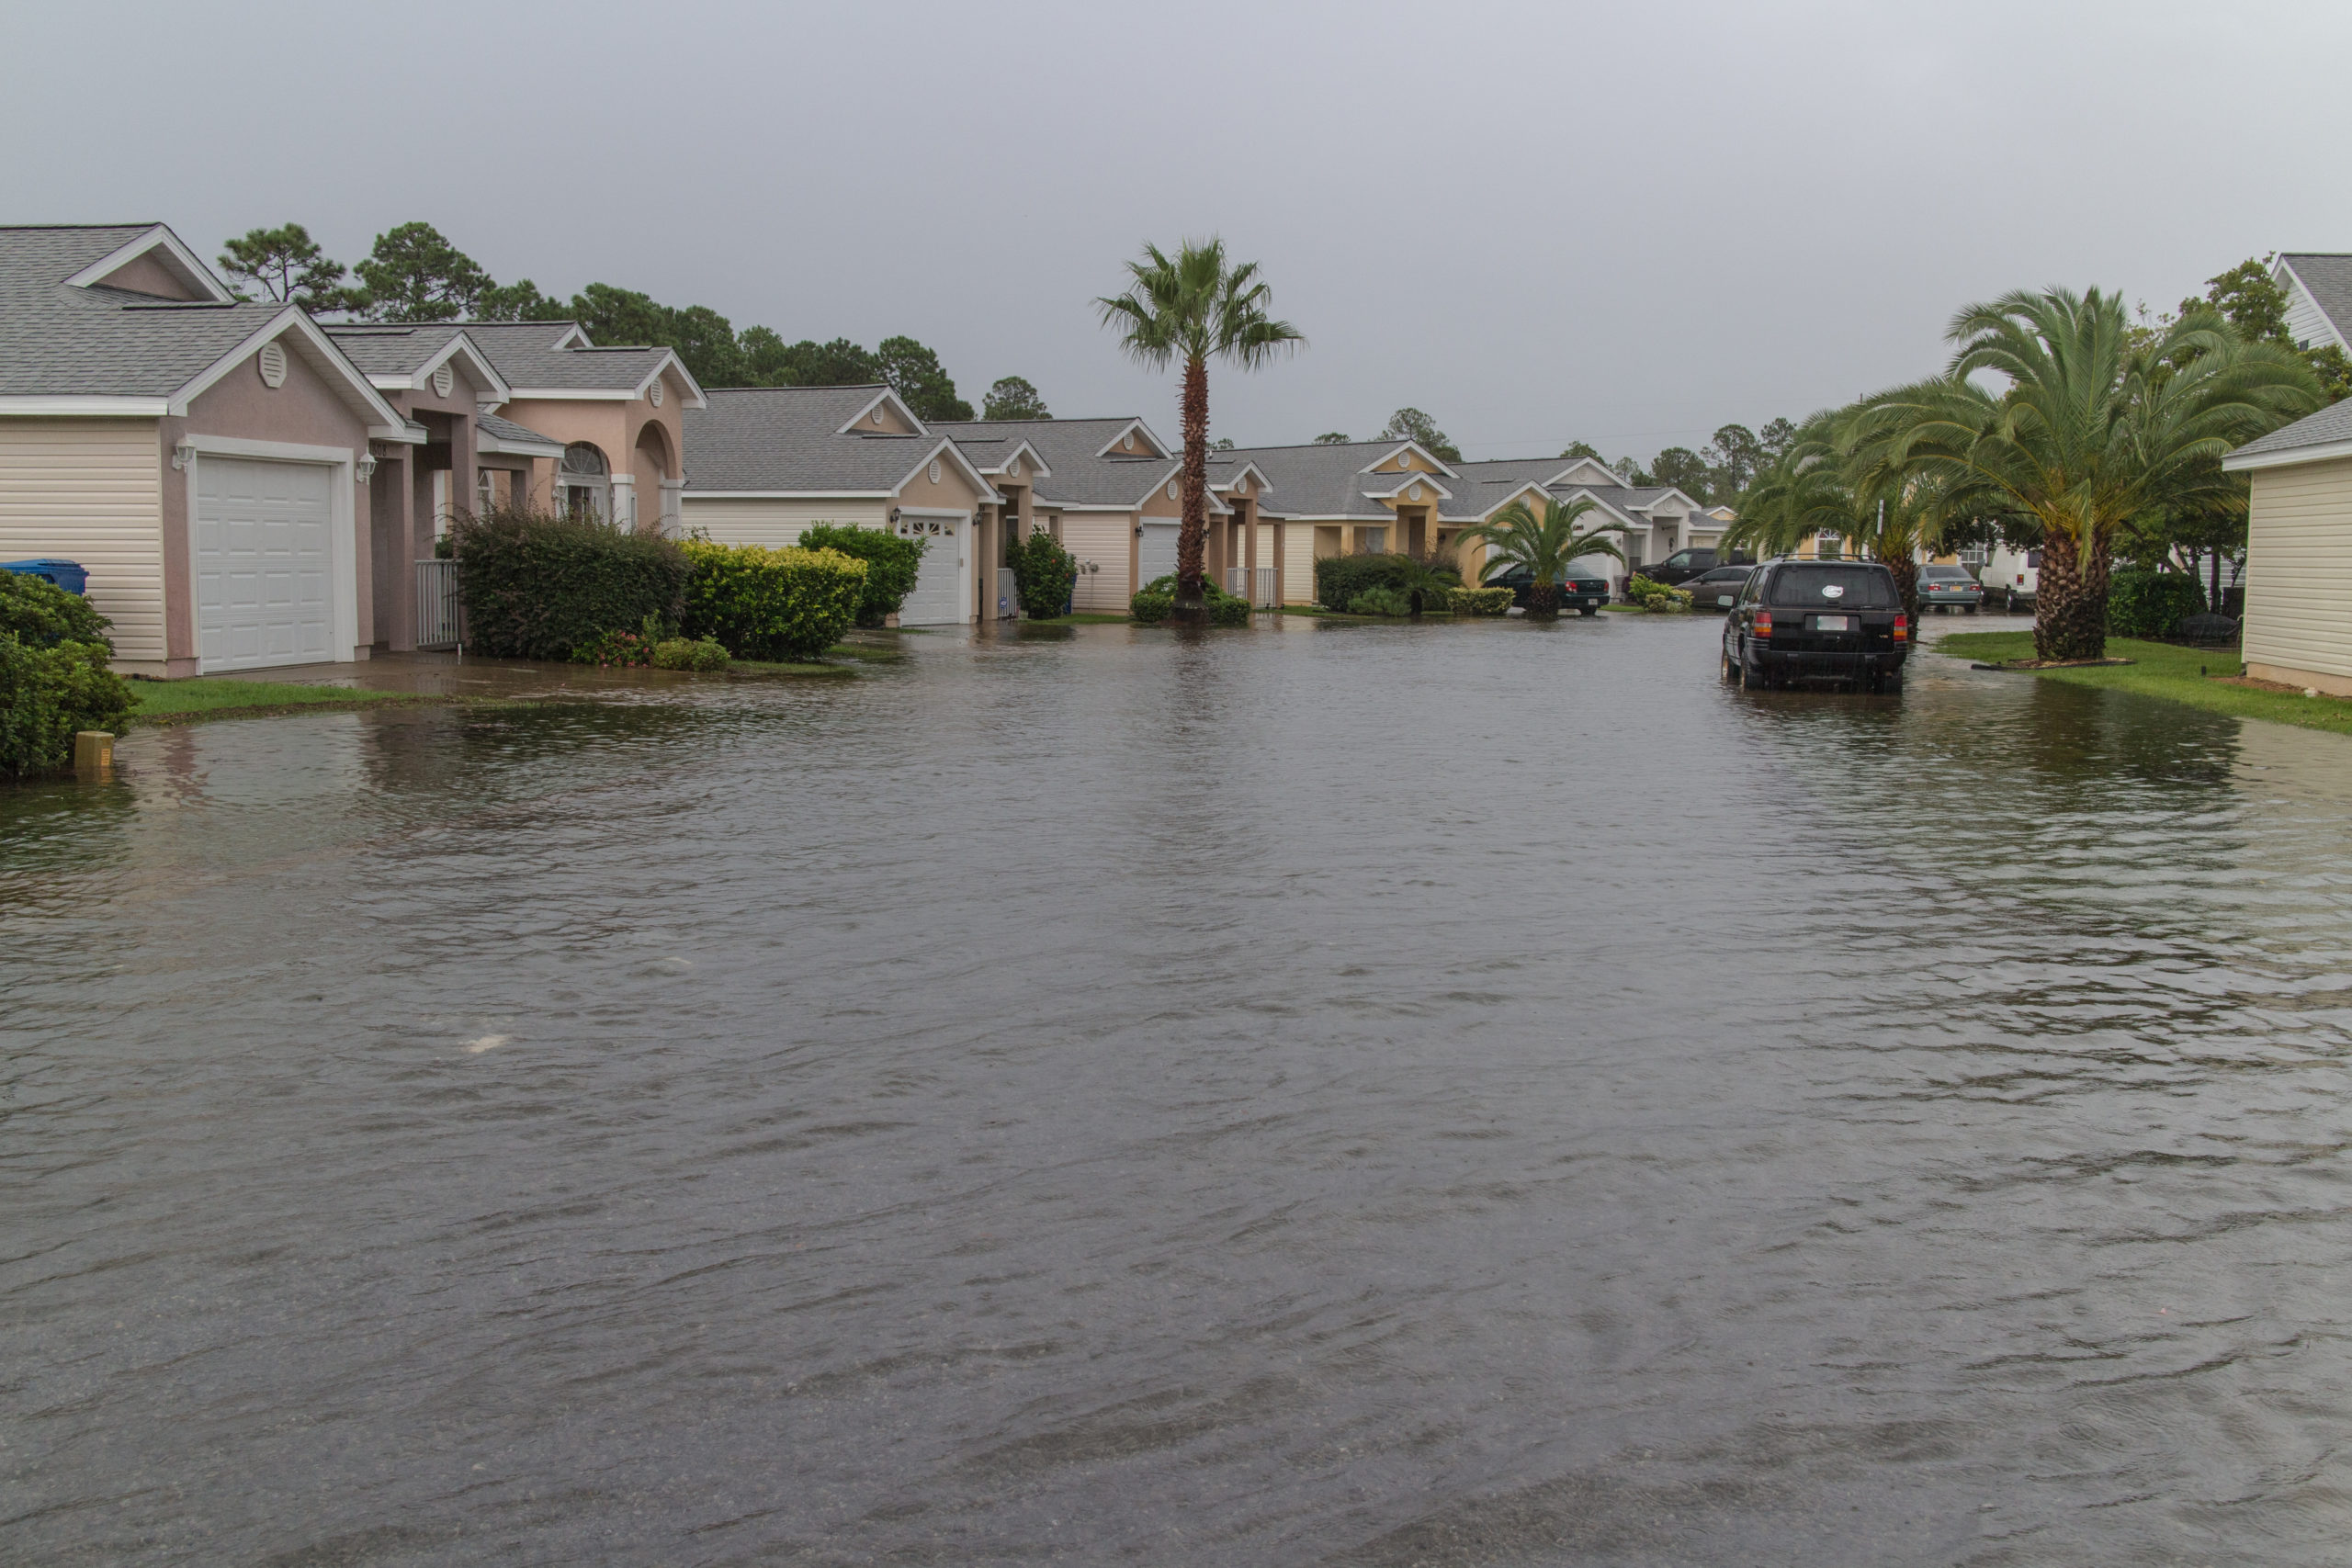 Photo of a flooded residential street in Florida.